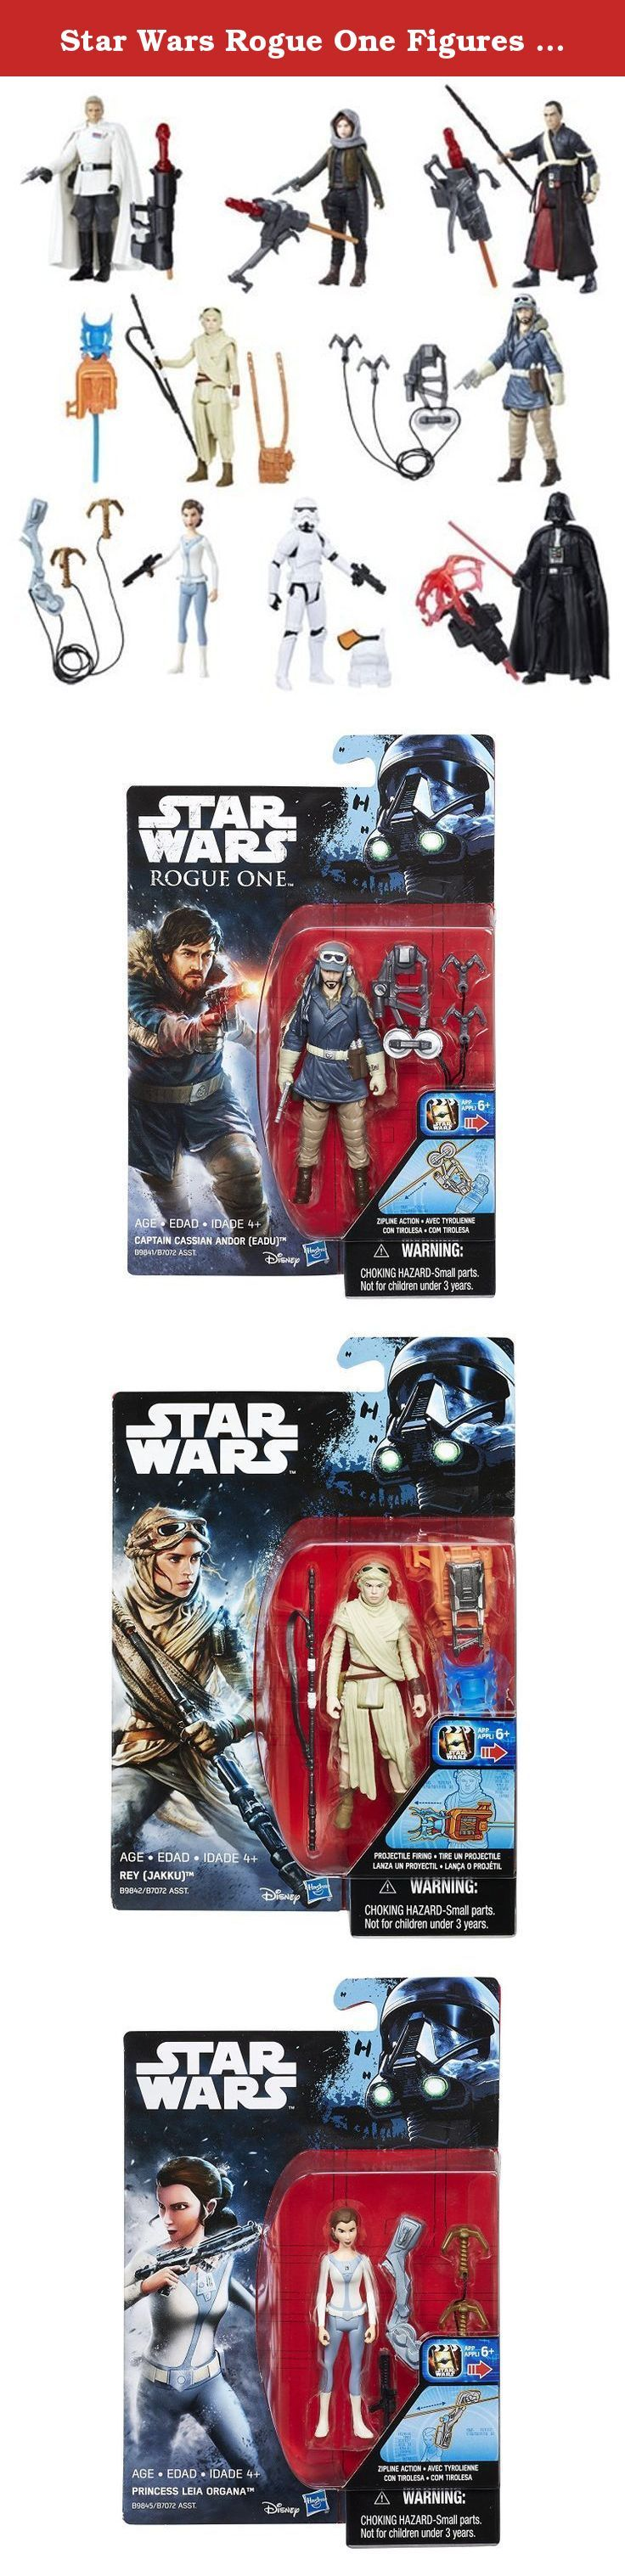 Star Wars Rogue One Figures 2016 Wave 2 Set of 8. Set includes the following figures: Rogue One Chirrut Imwe, Imperial Stormtrooper, Director Krennic, Captain Cassian Andor Eadu, Darth Vader & Sergeant Jyn Erso. Force Awakens Jakku Rey & Rebels Princess Leia Organa. Tour the galaxy with the Star Wars Rogue One 3 3/4-Inch Action Figures Wave 2 Case! Each 3 3/4-inch action figure includes a pair of accessories - or possibly even more - from a galaxy far, far away. Feel disturbances in the...